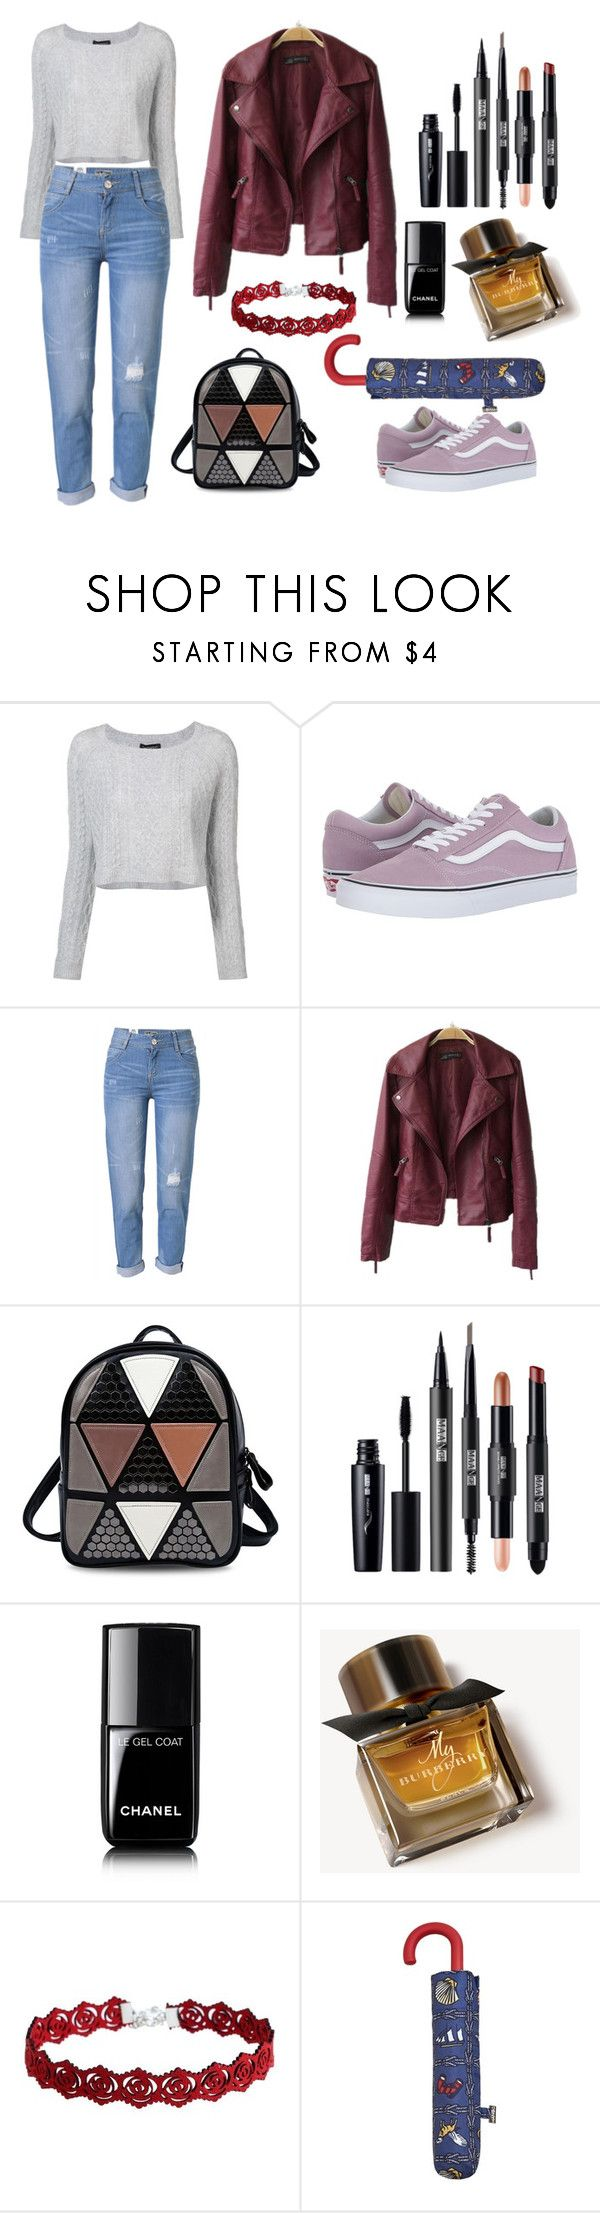 """""""Rain rain go away"""" by stefi-mh-96 ❤ liked on Polyvore featuring ThePerfext, Vans, WithChic, Chanel, Burberry and MANGO"""